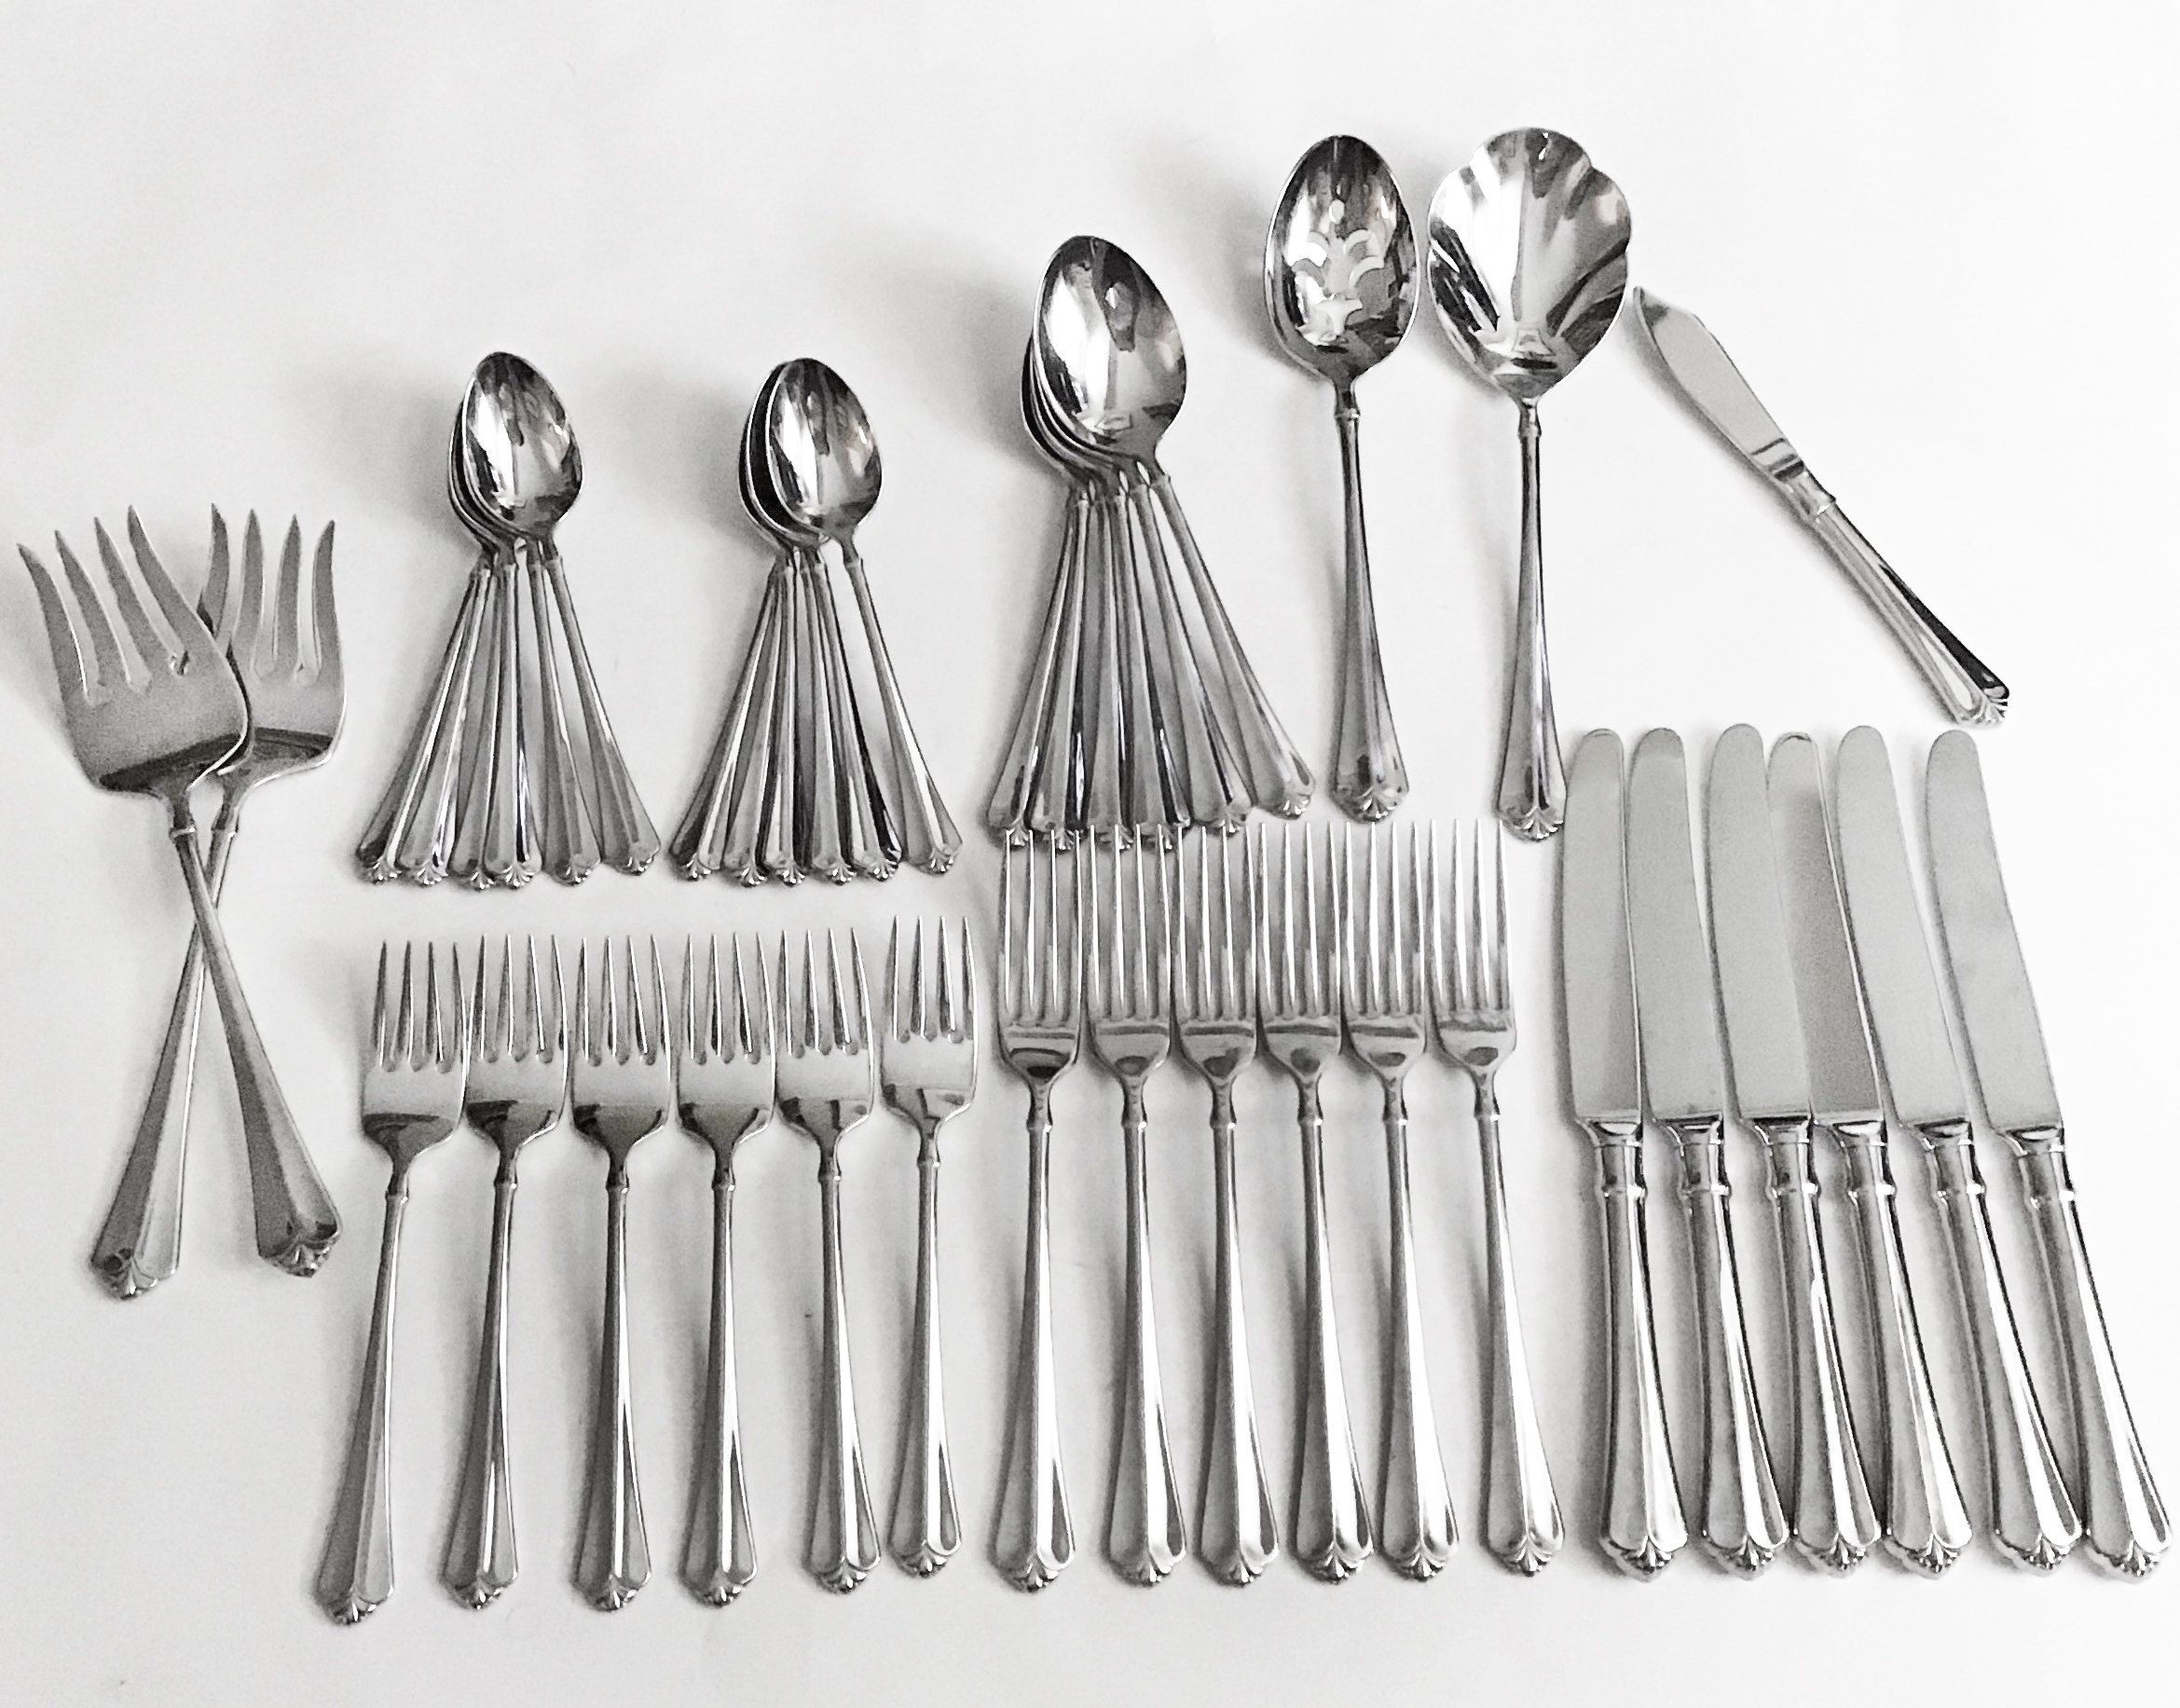 12   ONEIDA JUILLIARD TEASPOONS 18//10 STAINLESS  FREE SHIPPING US ONLY